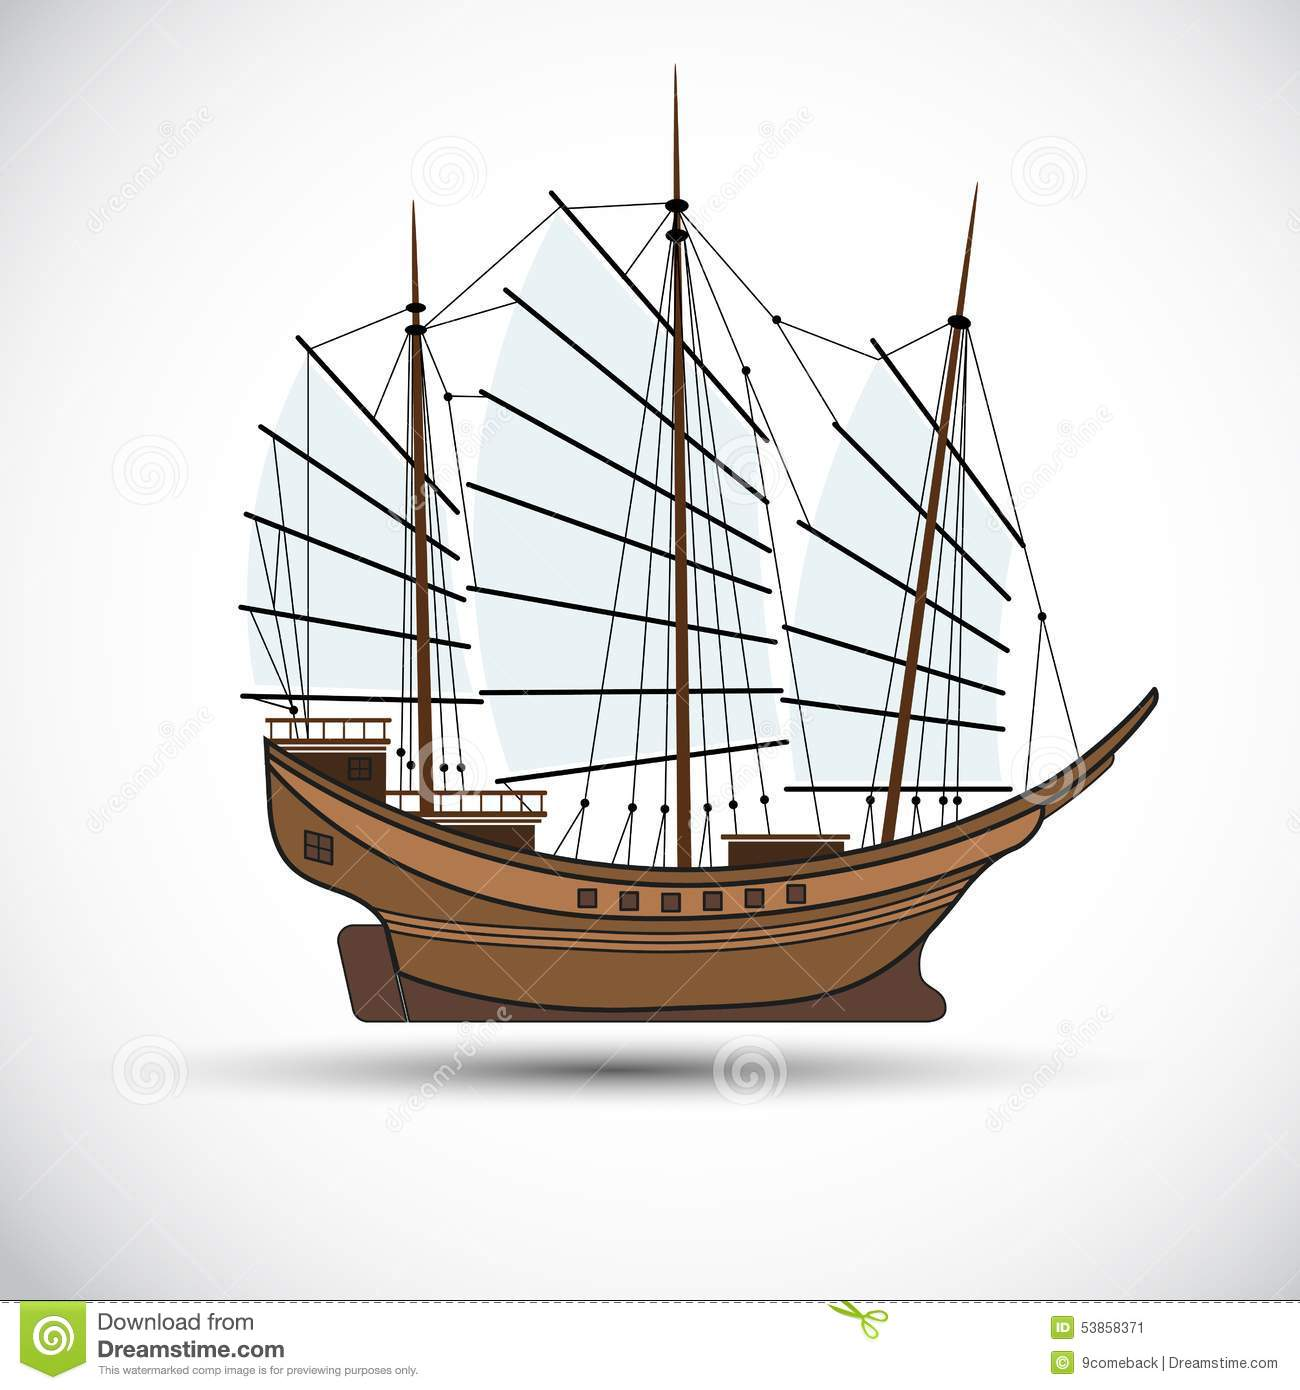 Sailing Ship Stock Vector - Image: 53858371